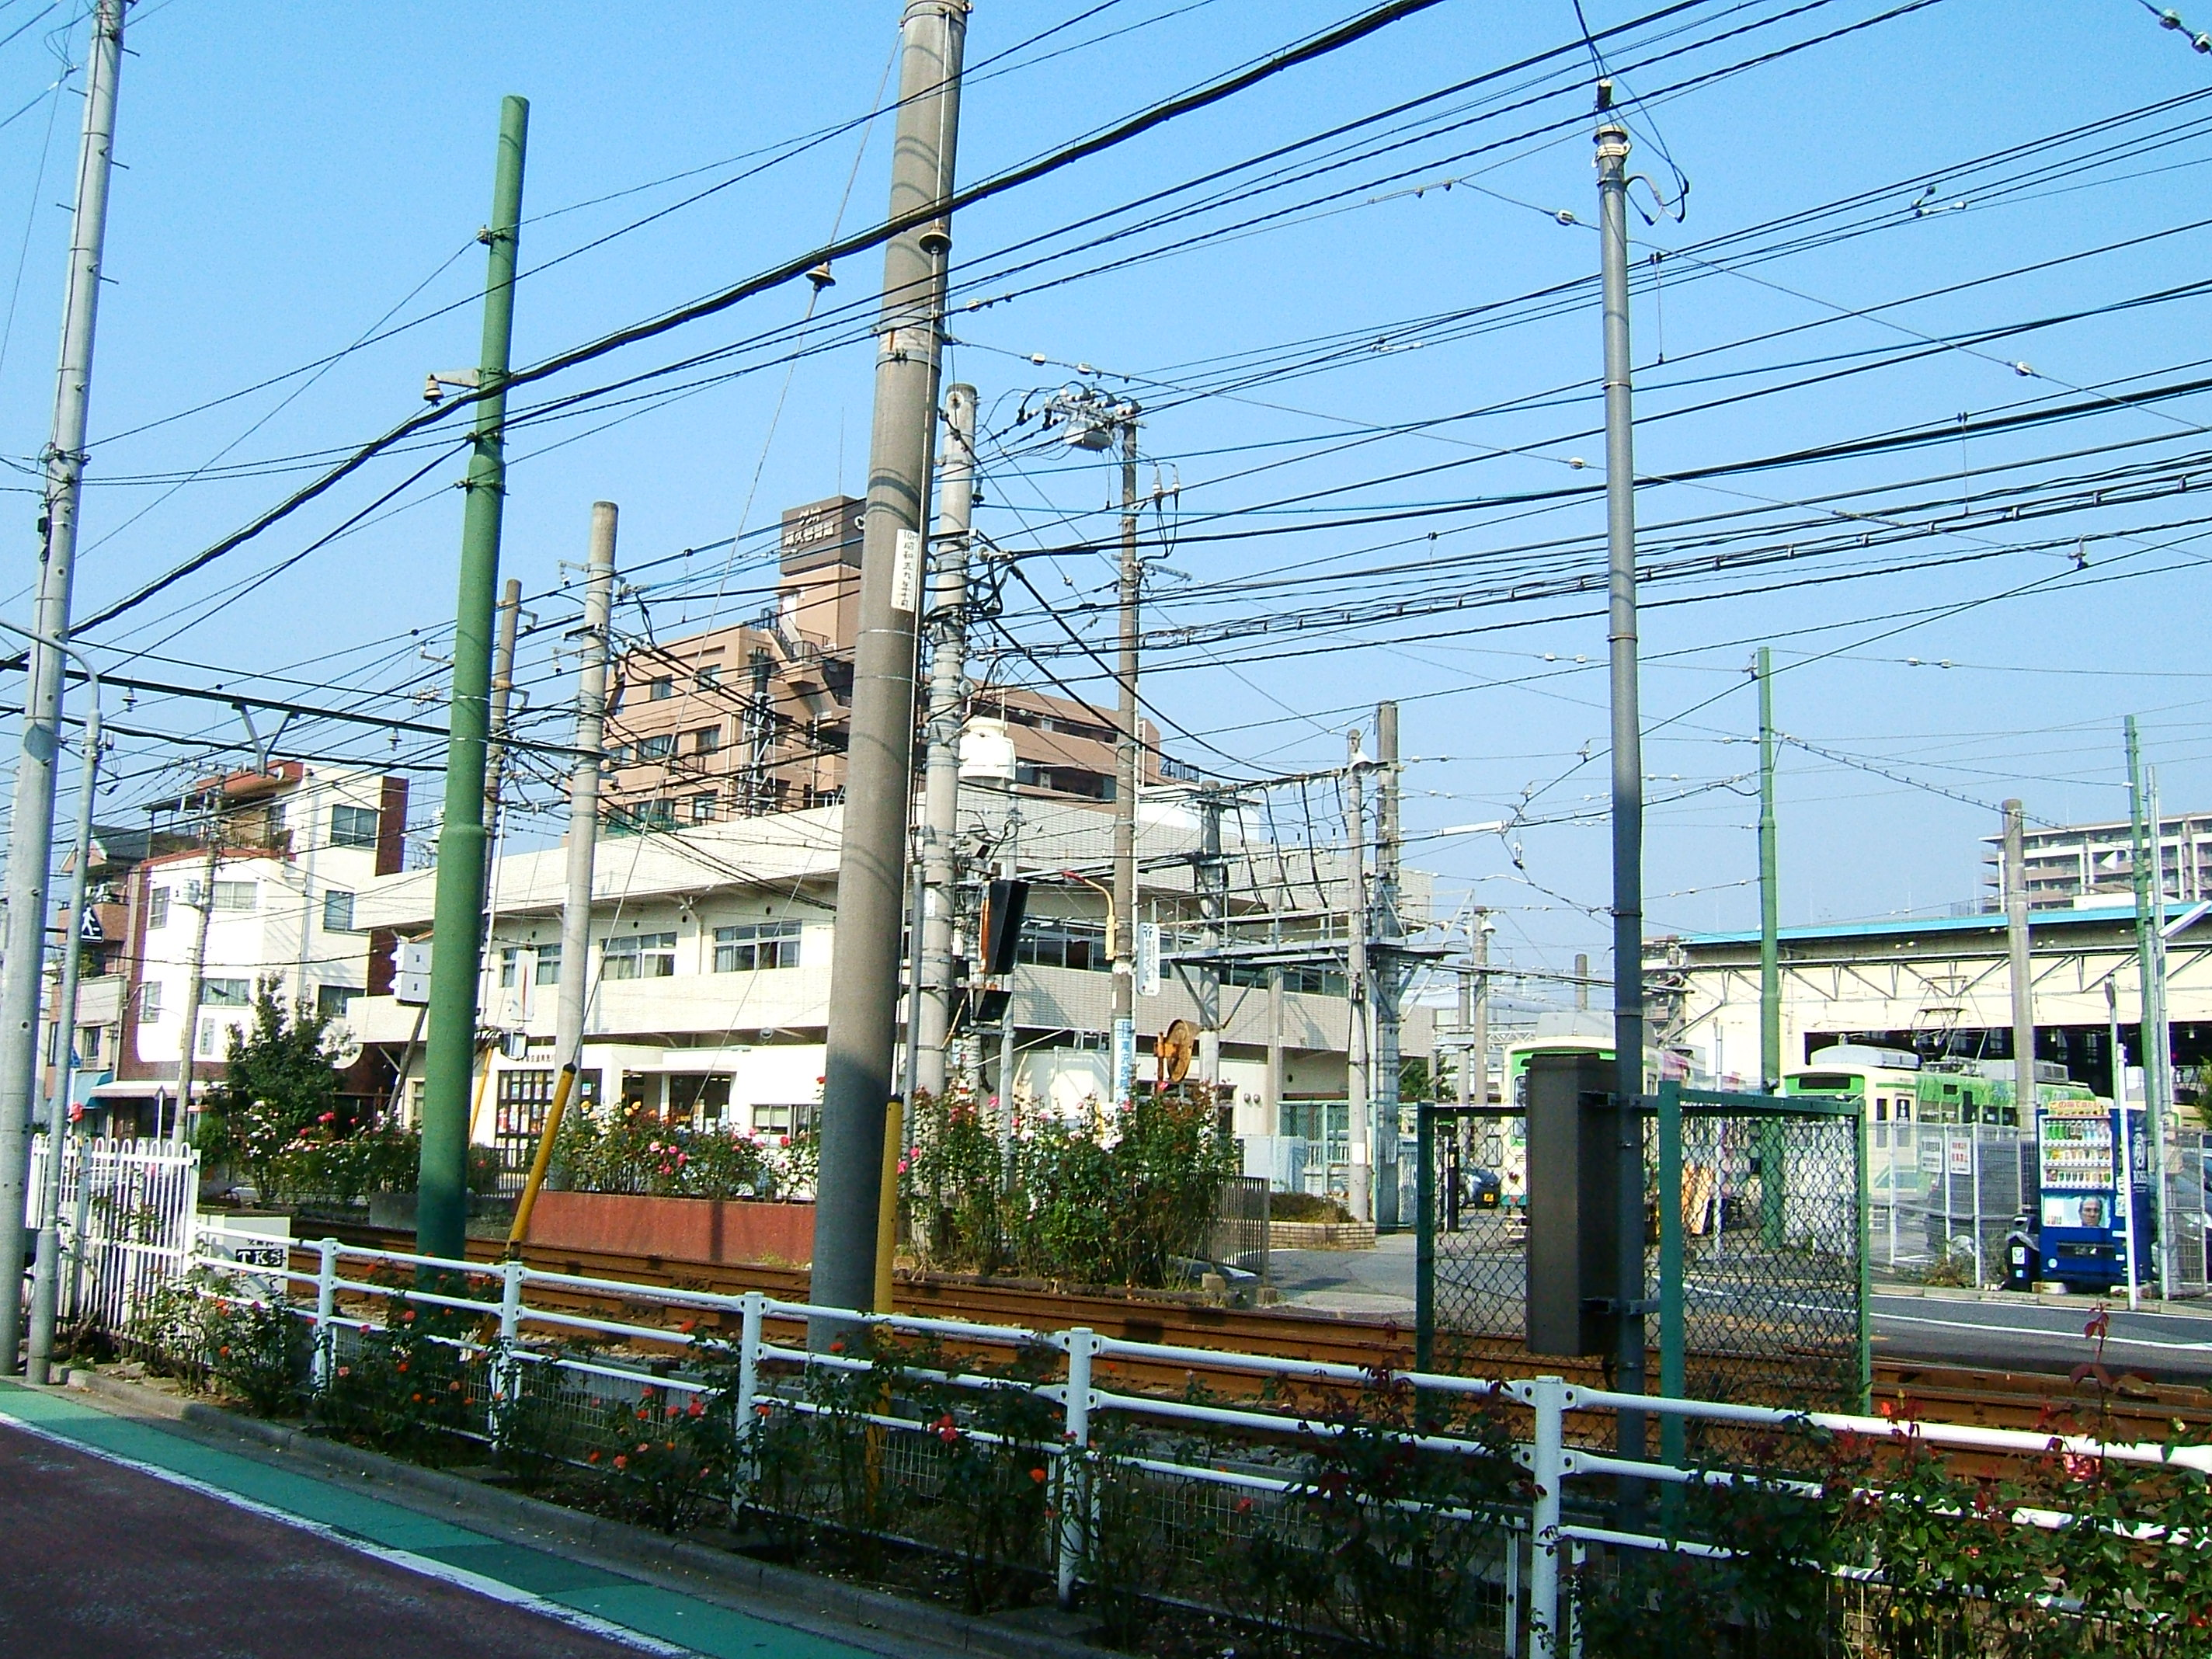 File:Electric wires of Tram 2, Arakawa Line.jpg - Wikimedia Commons